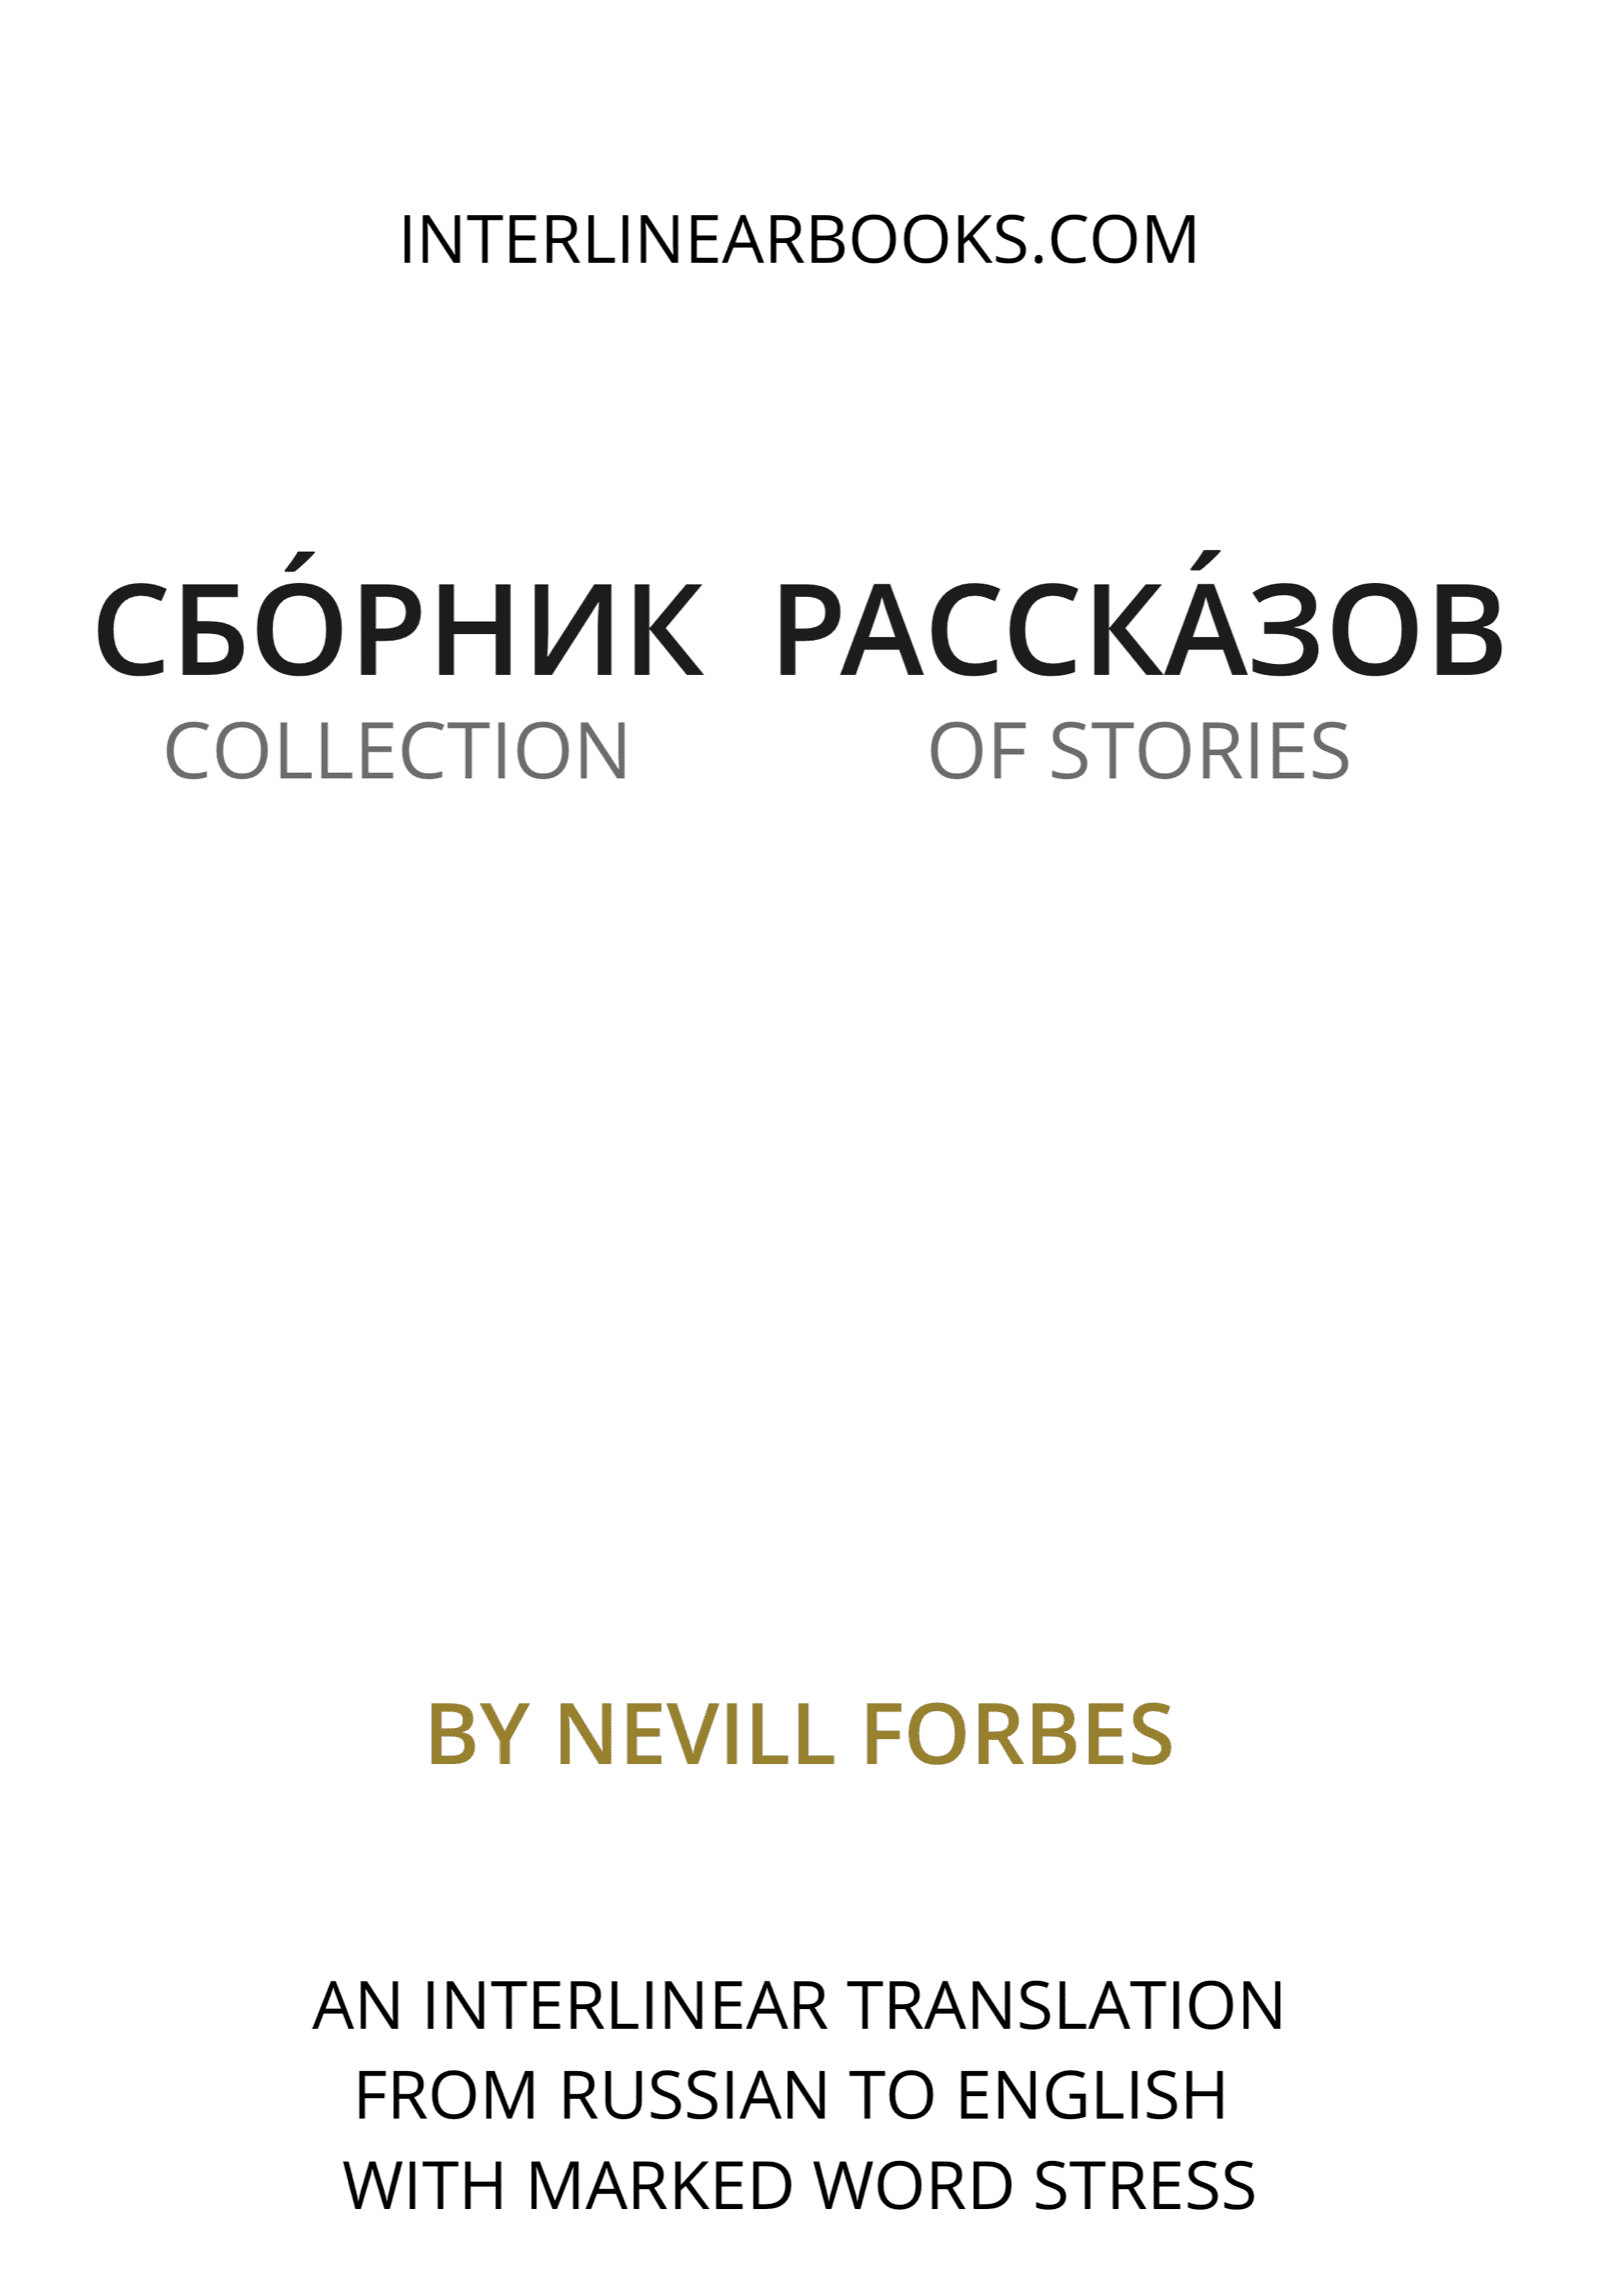 Russian book: Сборник рассказов / Collection of Stories